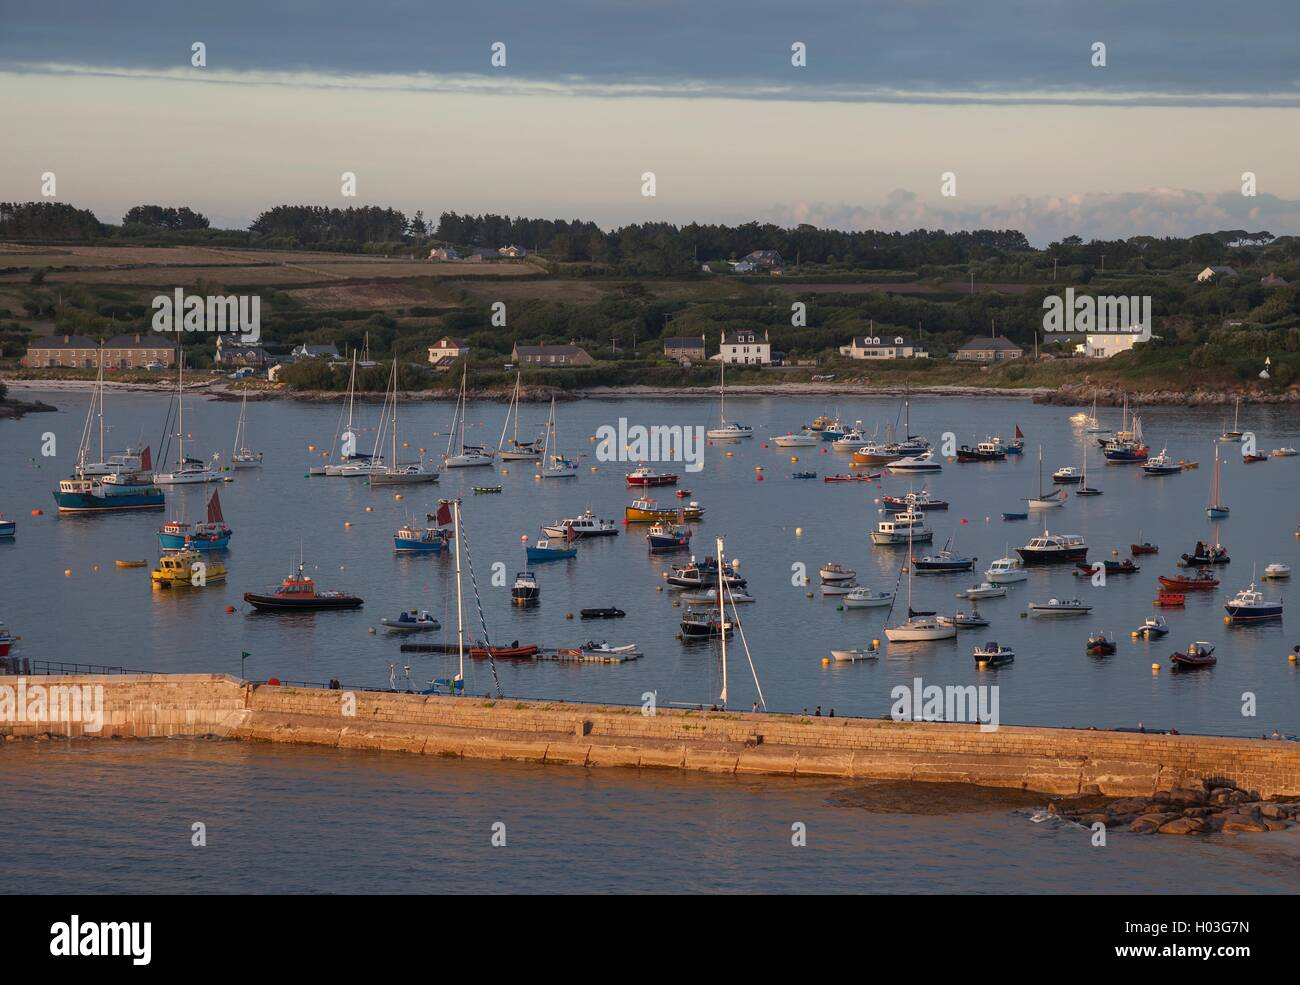 Evening time at St Mary's Harbour, Isles of Scilly, England - Stock Image